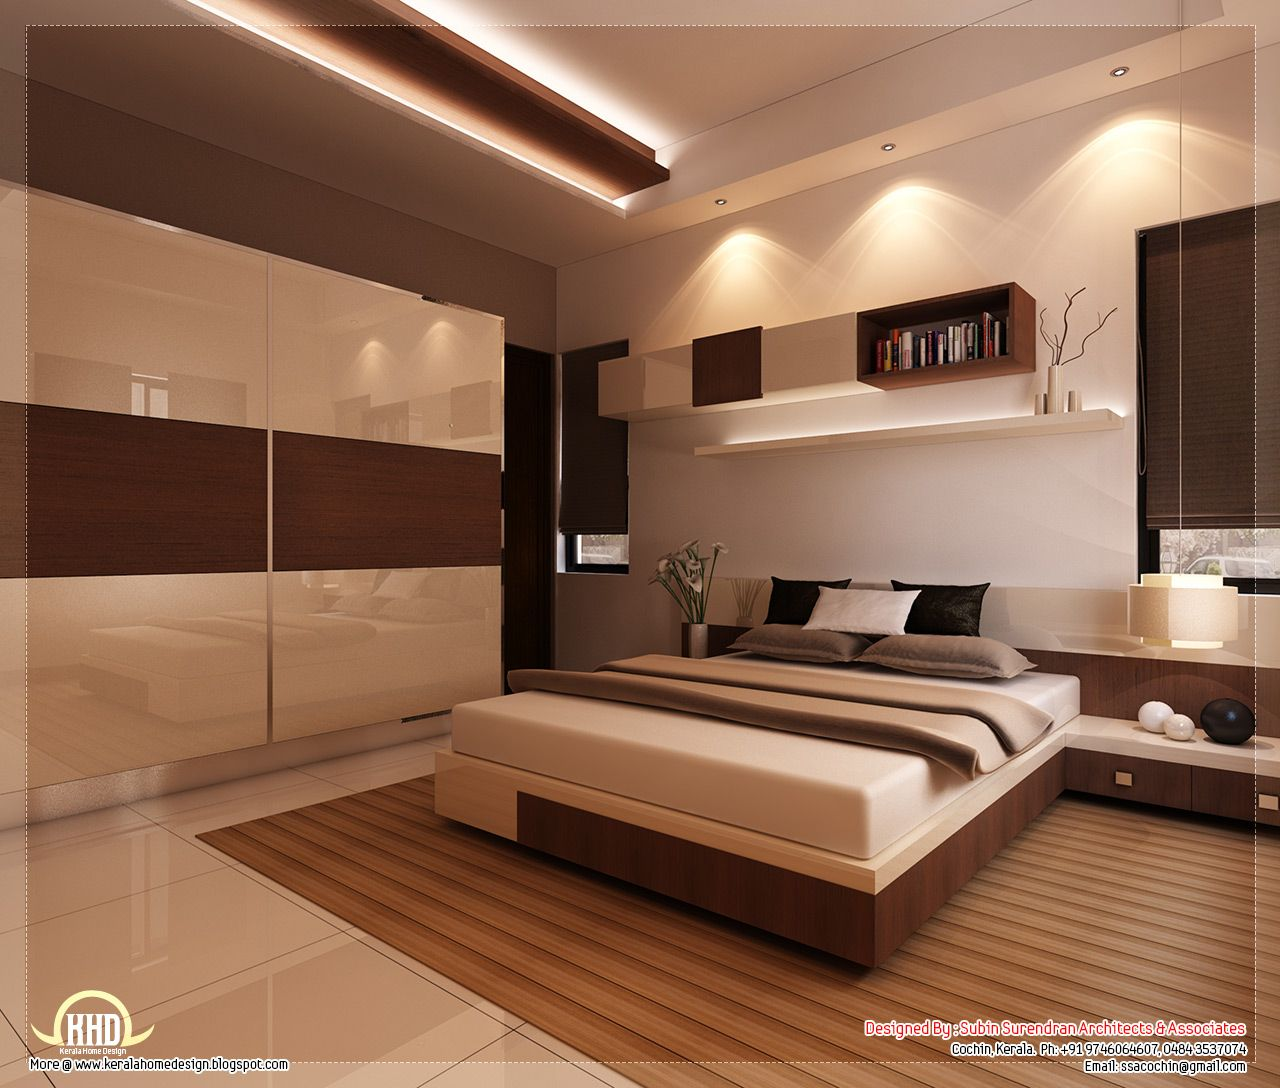 Home Design Ideas Hindi: Beautiful Home Interior Designs